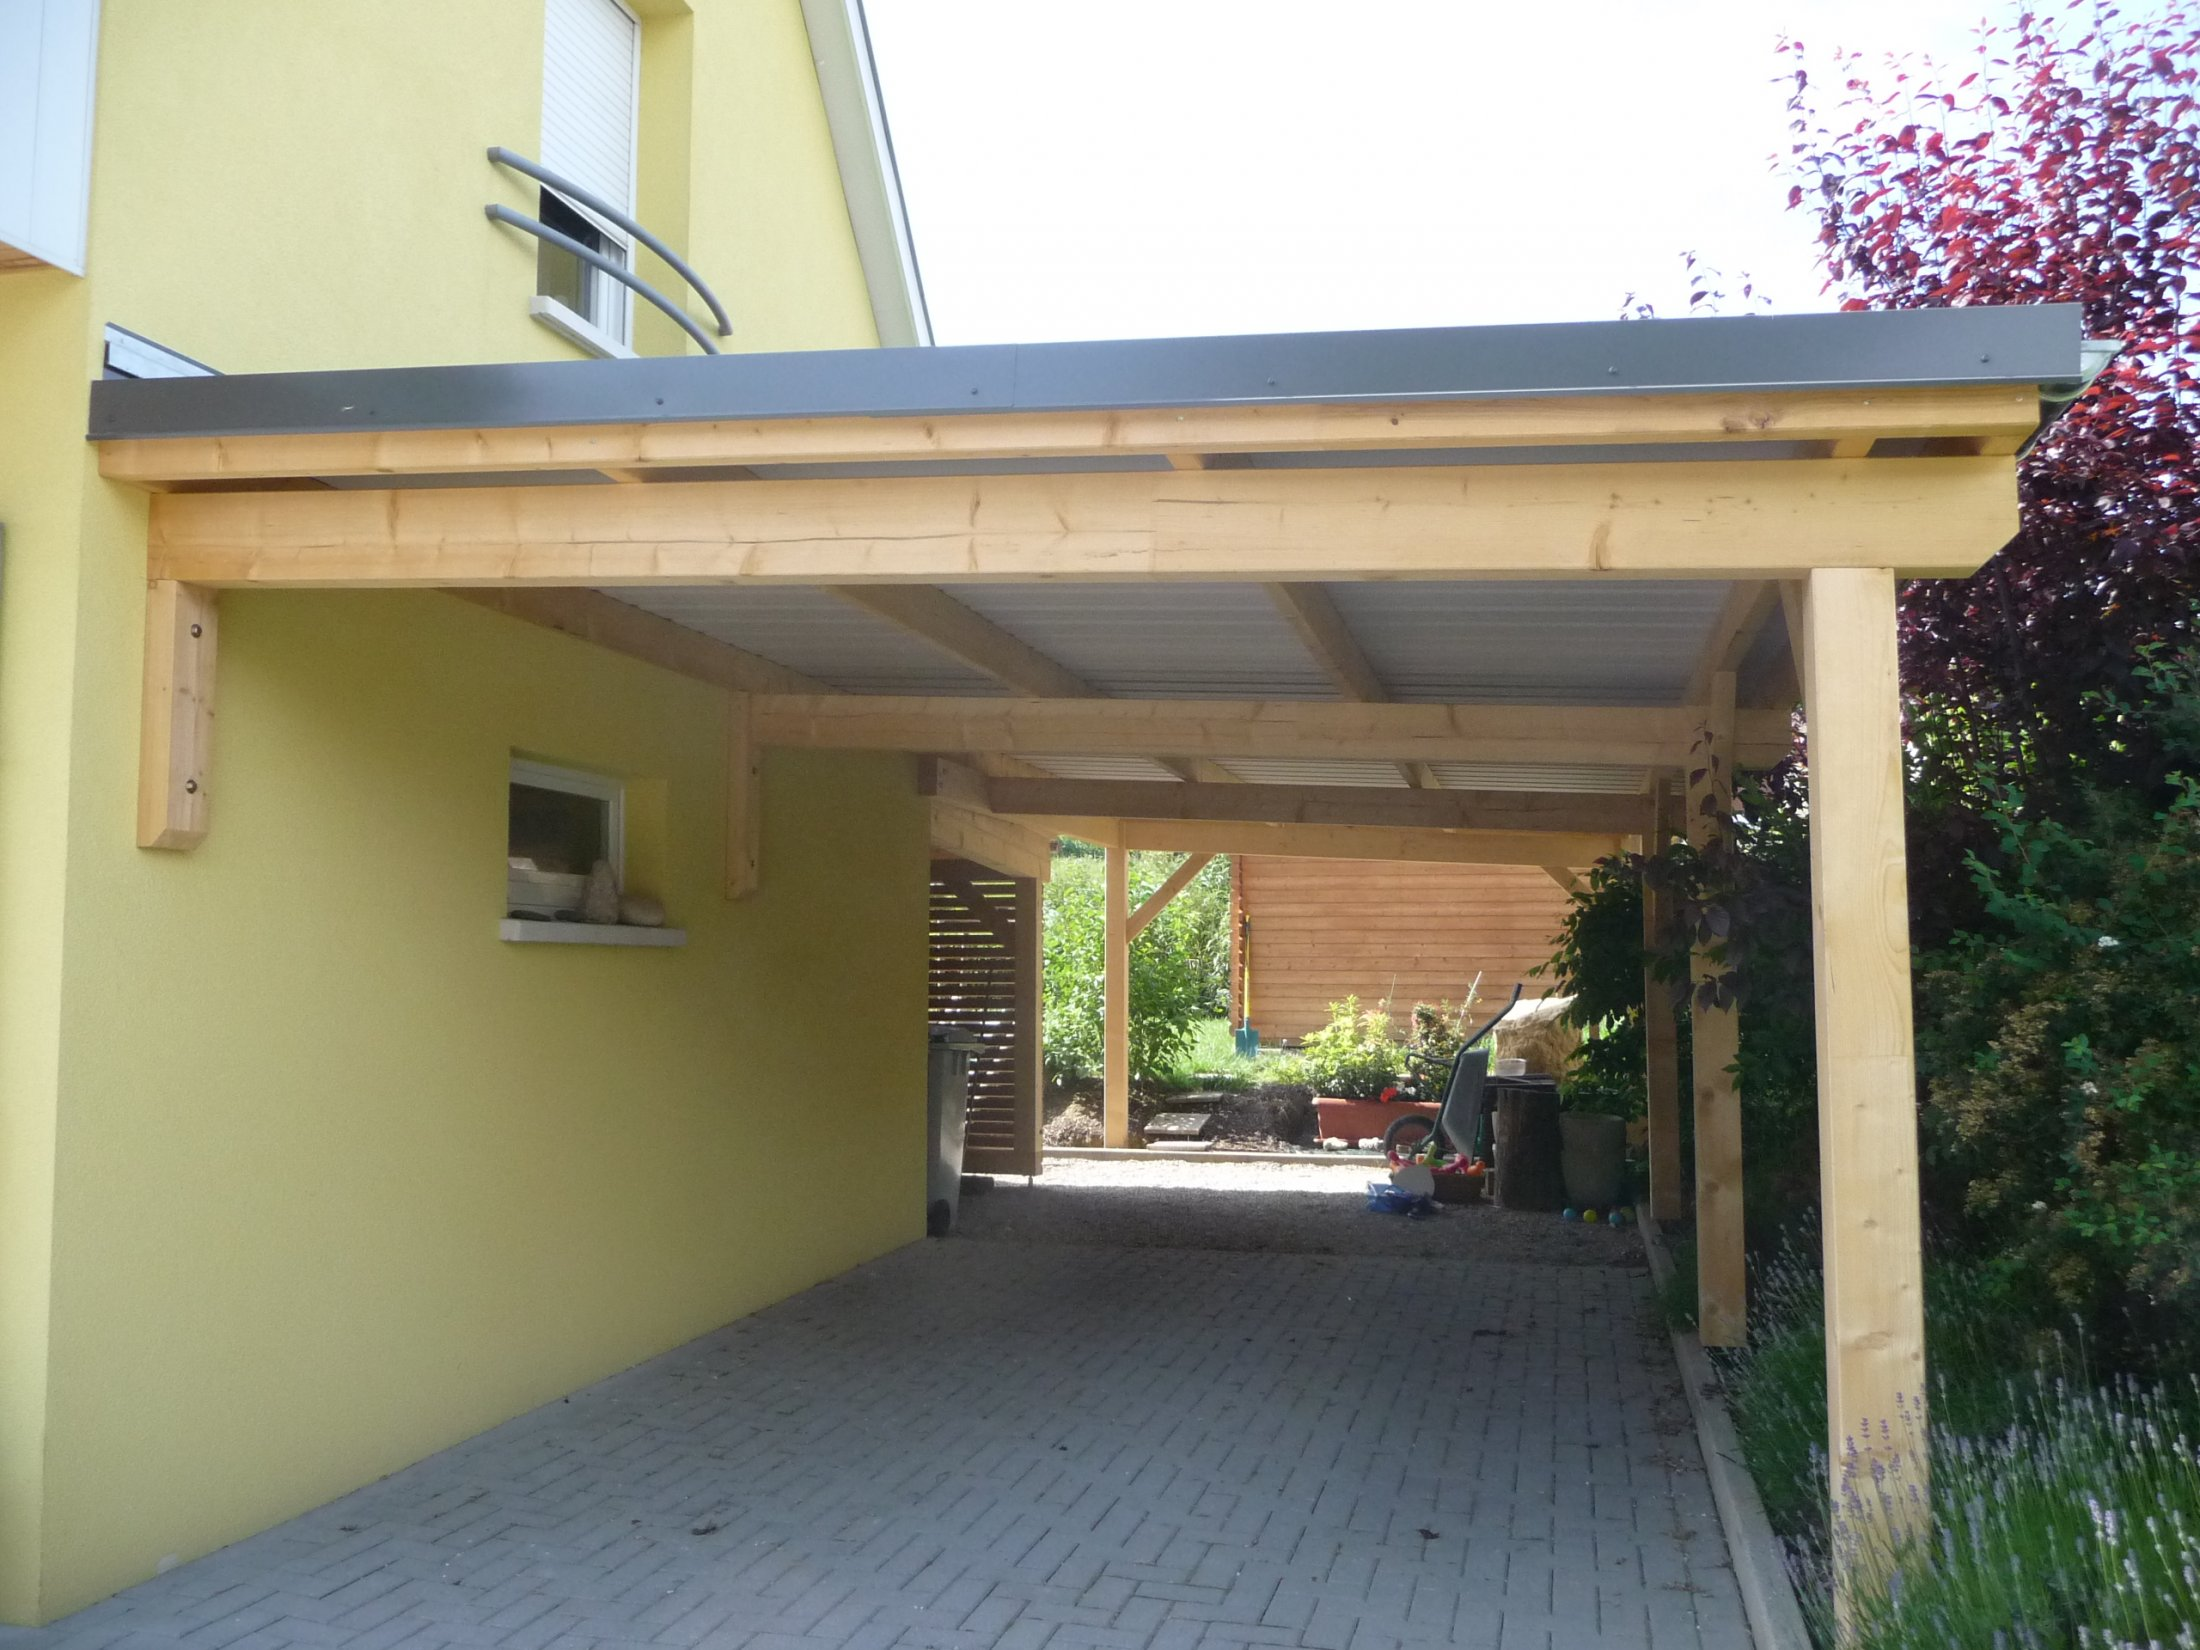 arkobois carport et garage arkobois. Black Bedroom Furniture Sets. Home Design Ideas